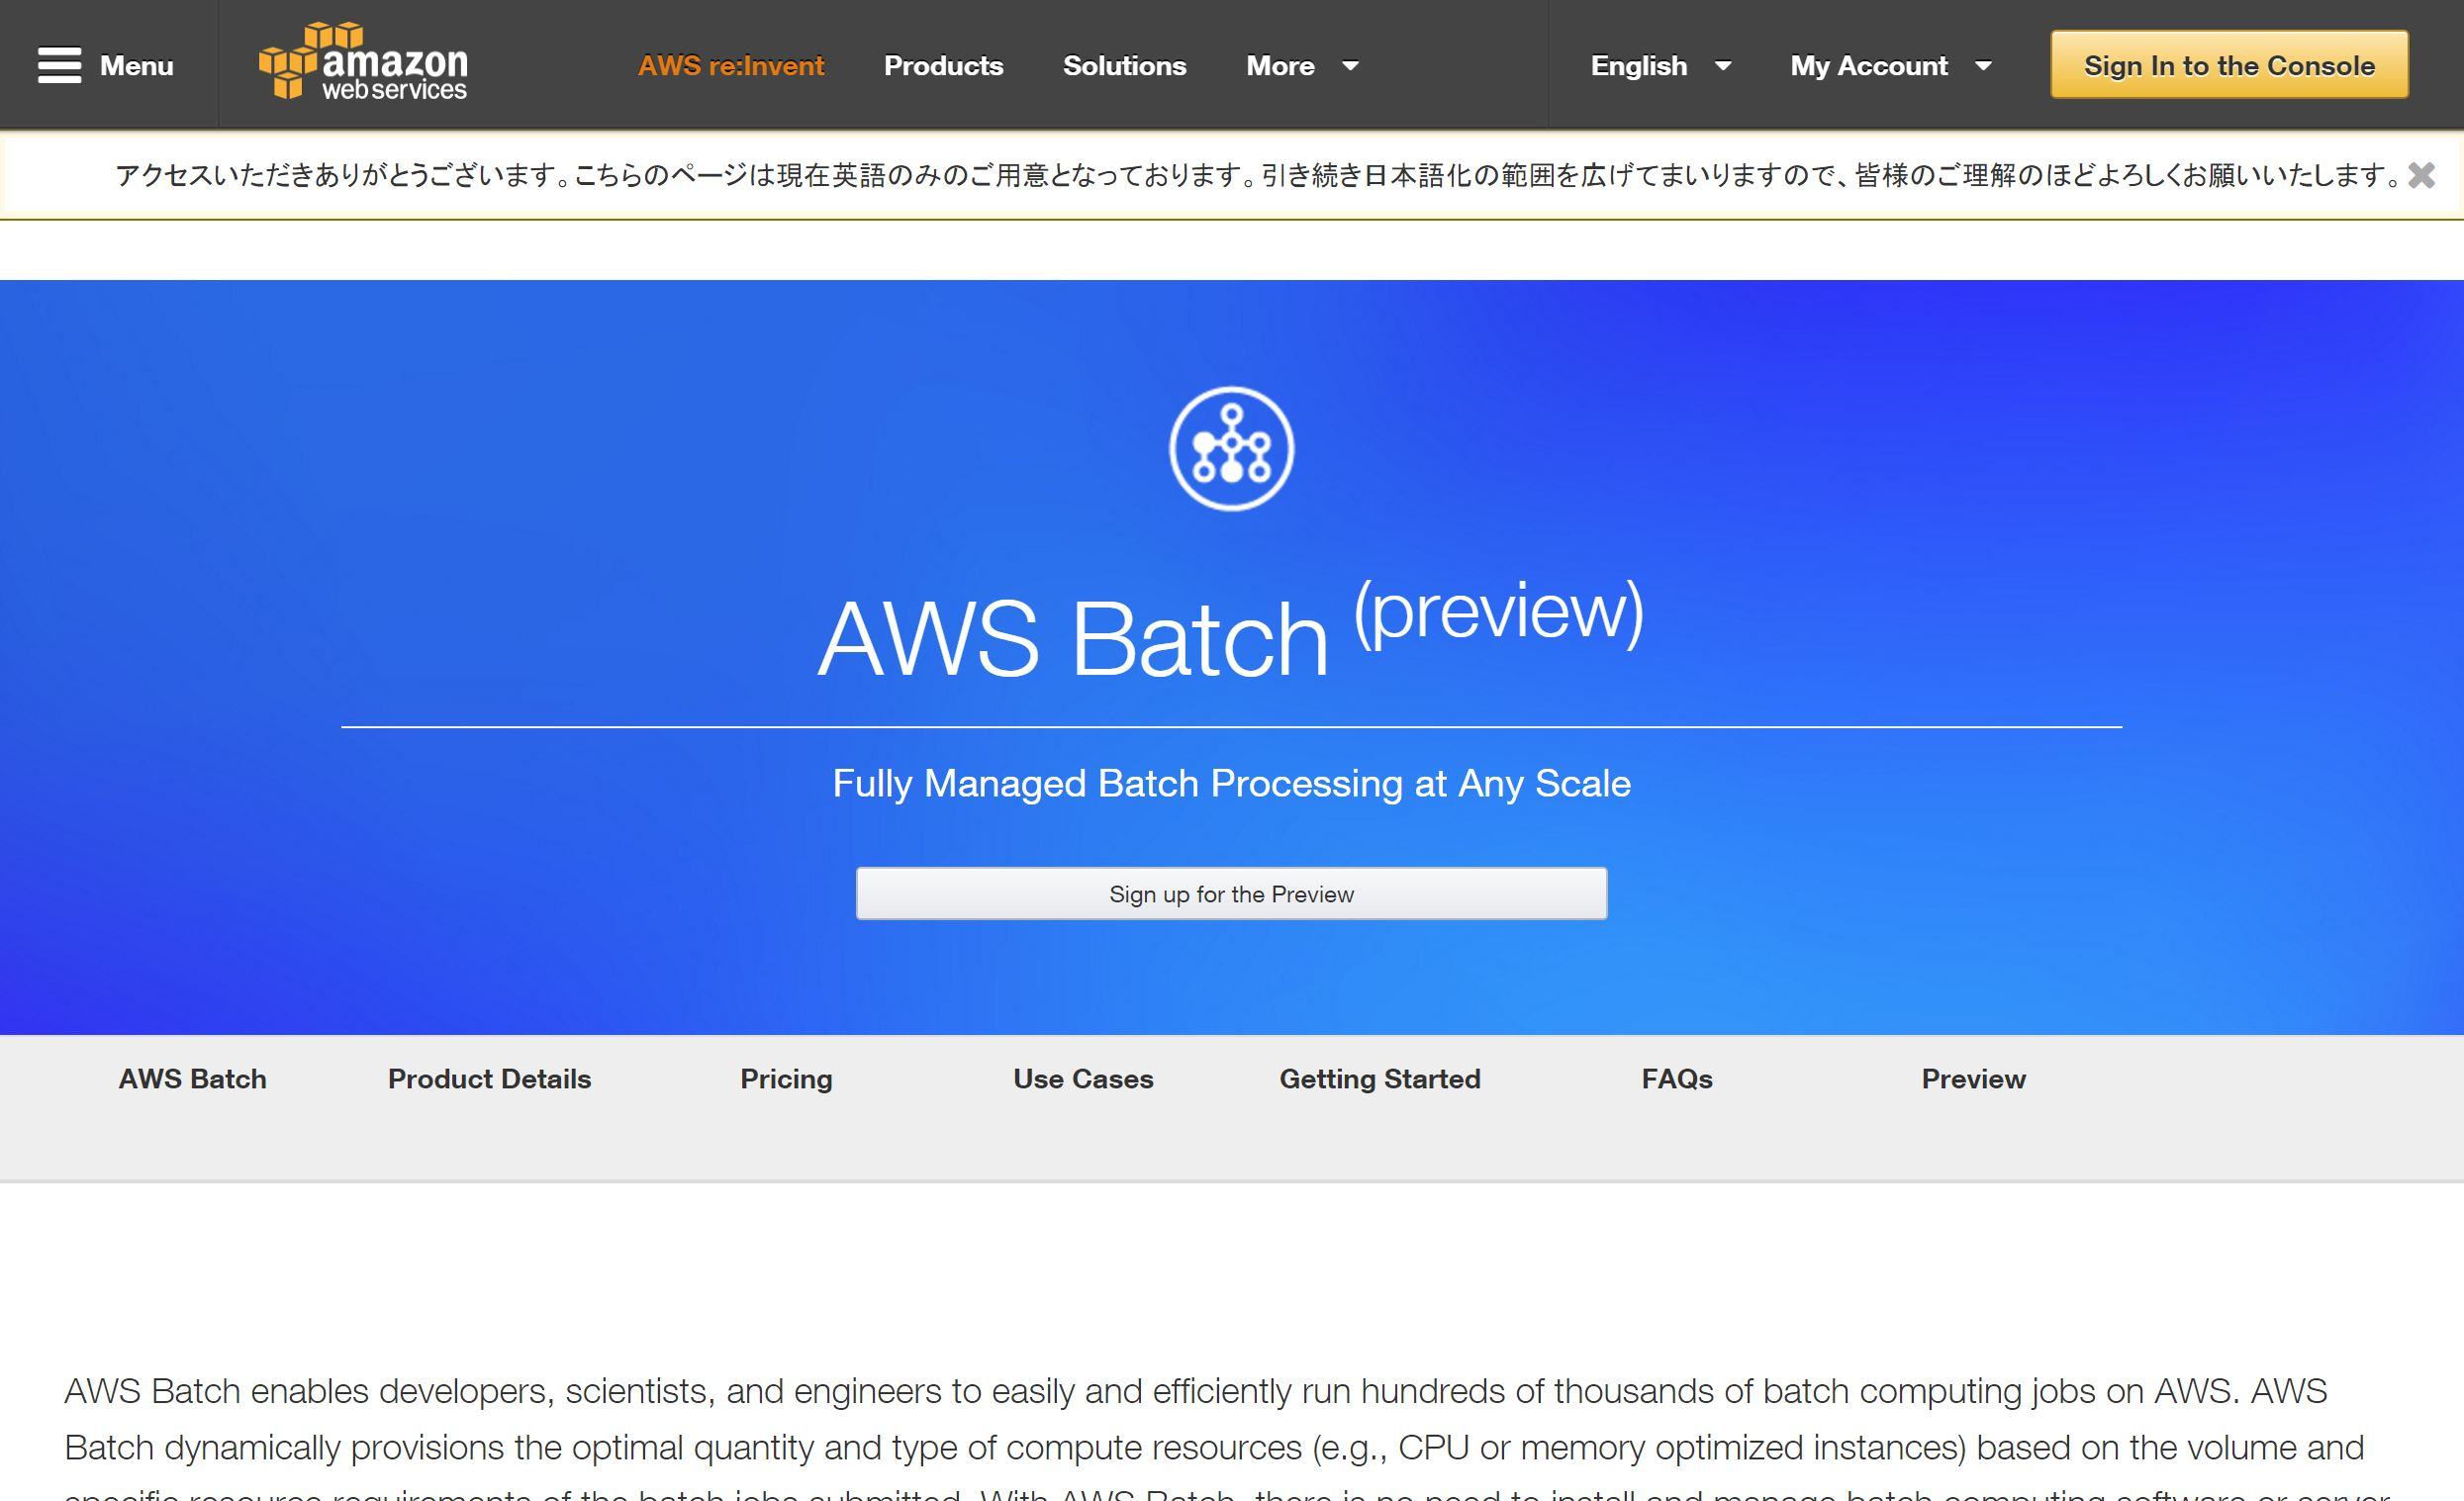 AWS Batch Preview